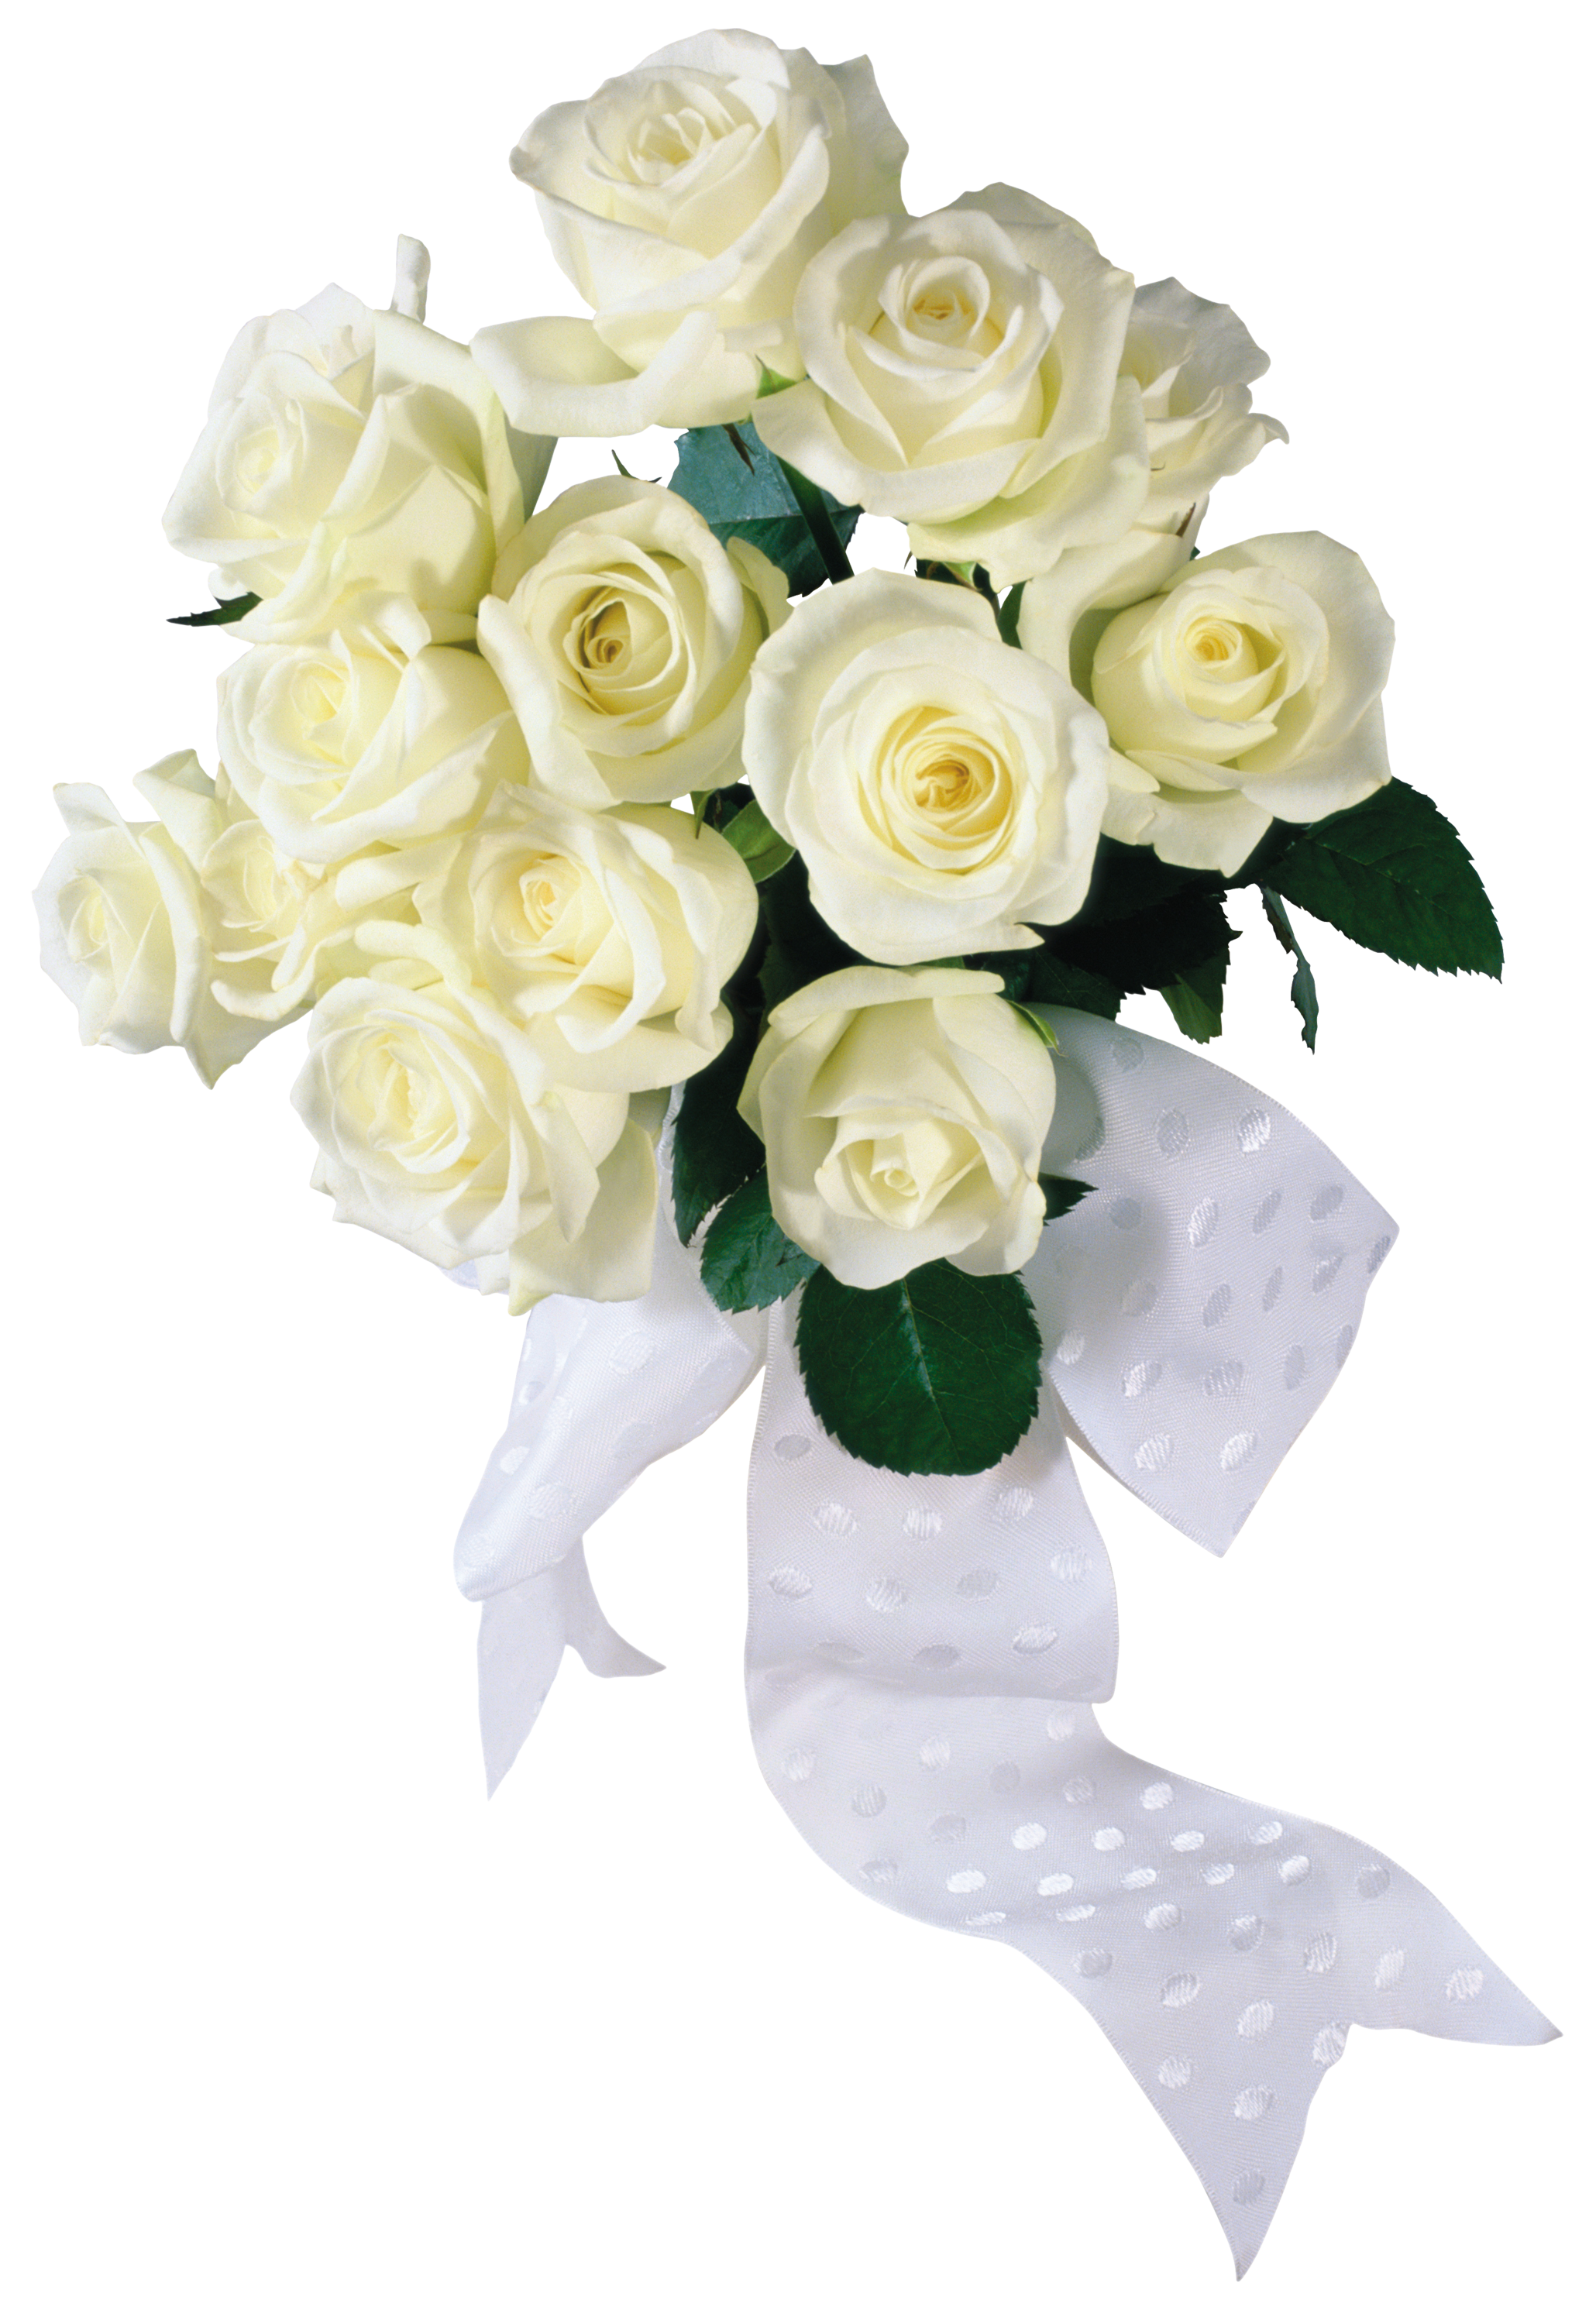 Hands clipart bouquet. White rose seventeen isolated